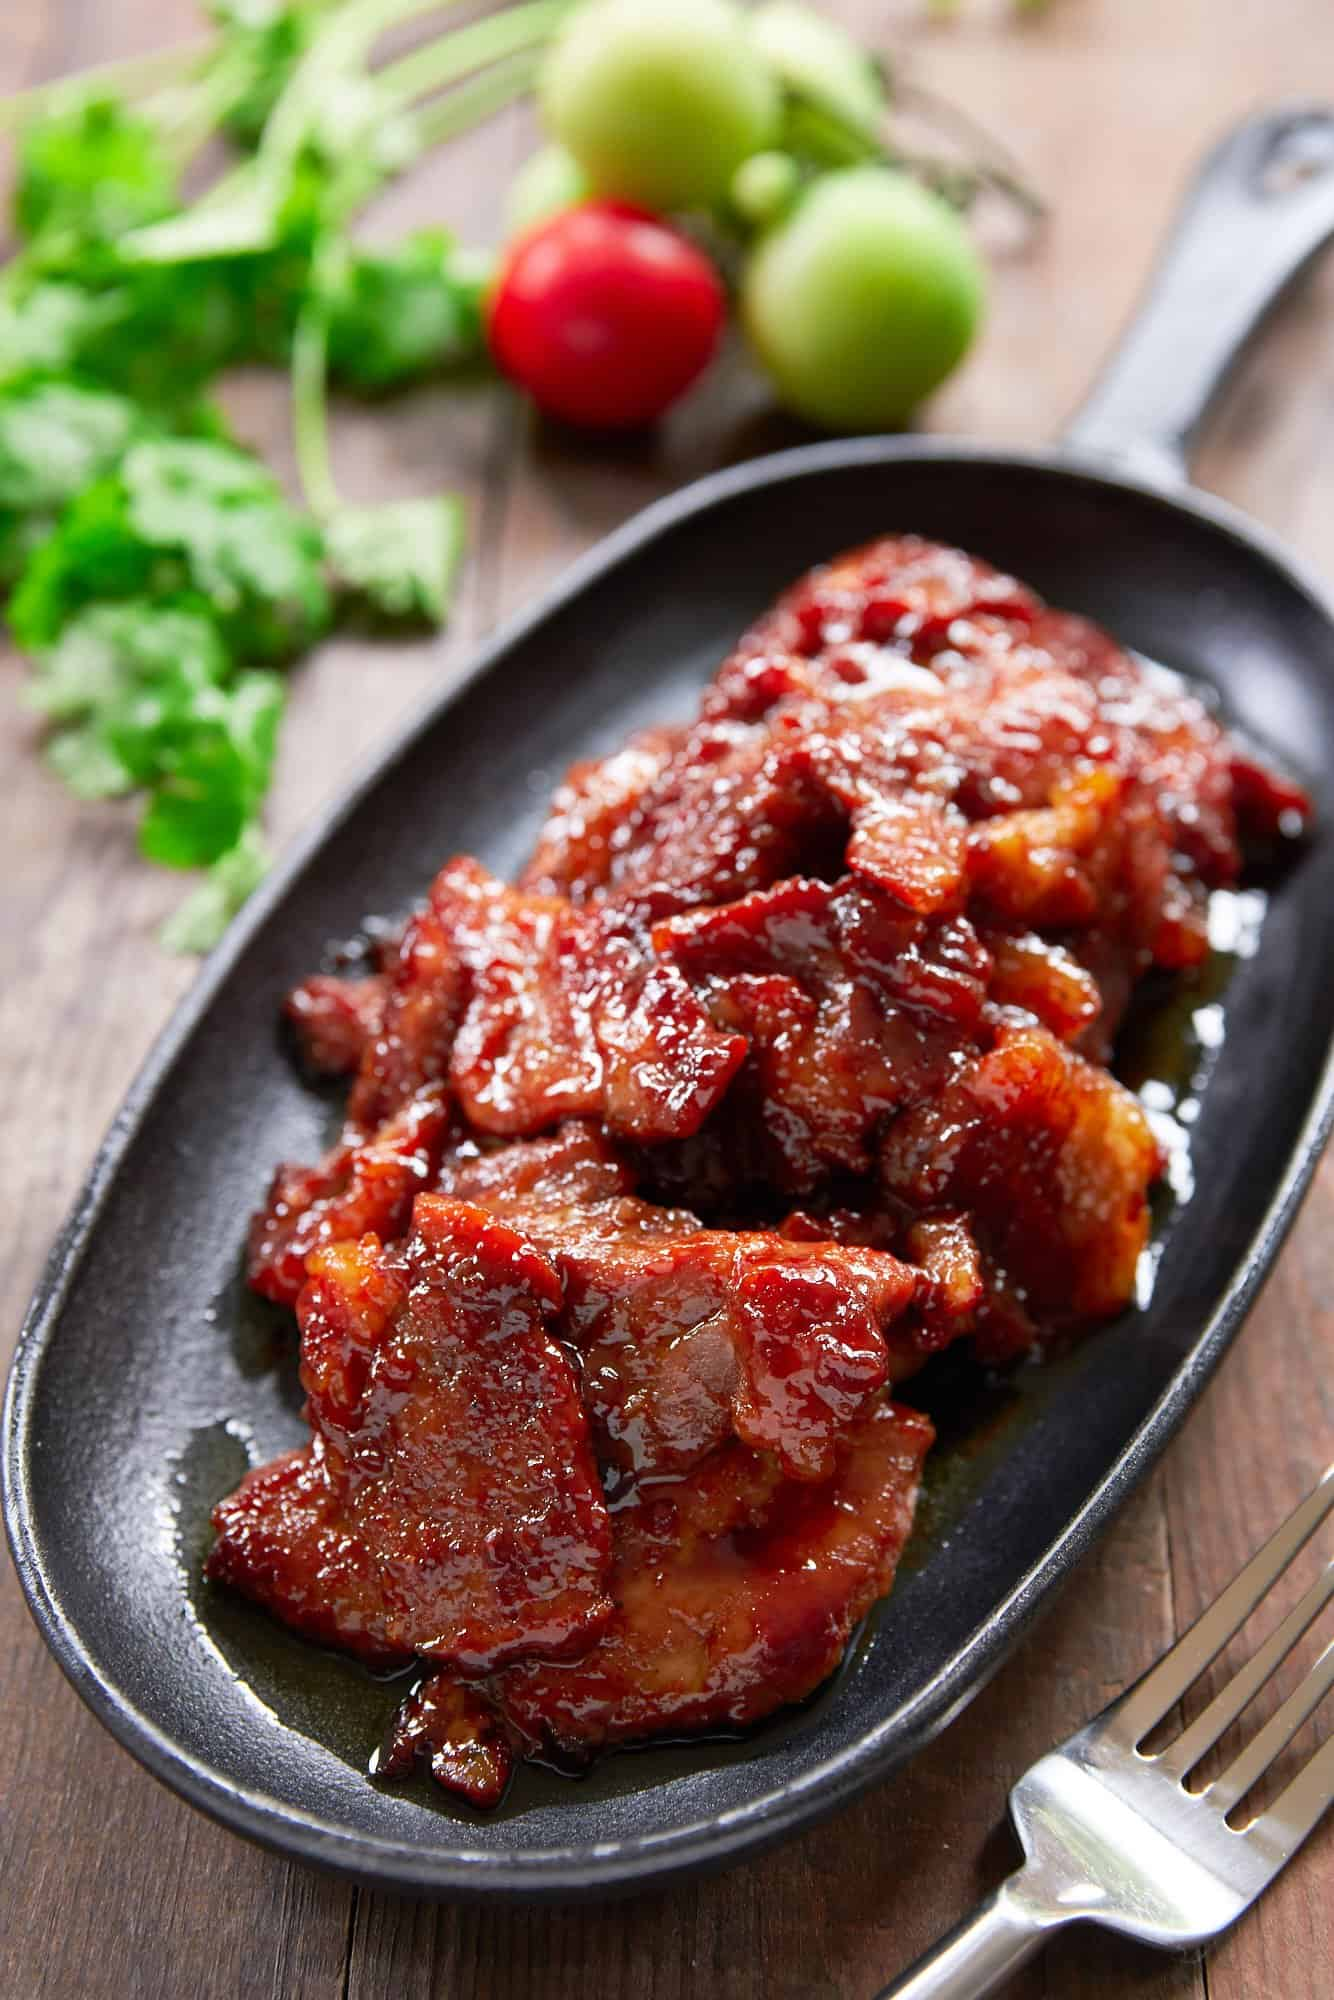 Tocino, or Filipino Bacon is a delicious sweet and savory breakfast treat that's easy to make and addictively good.